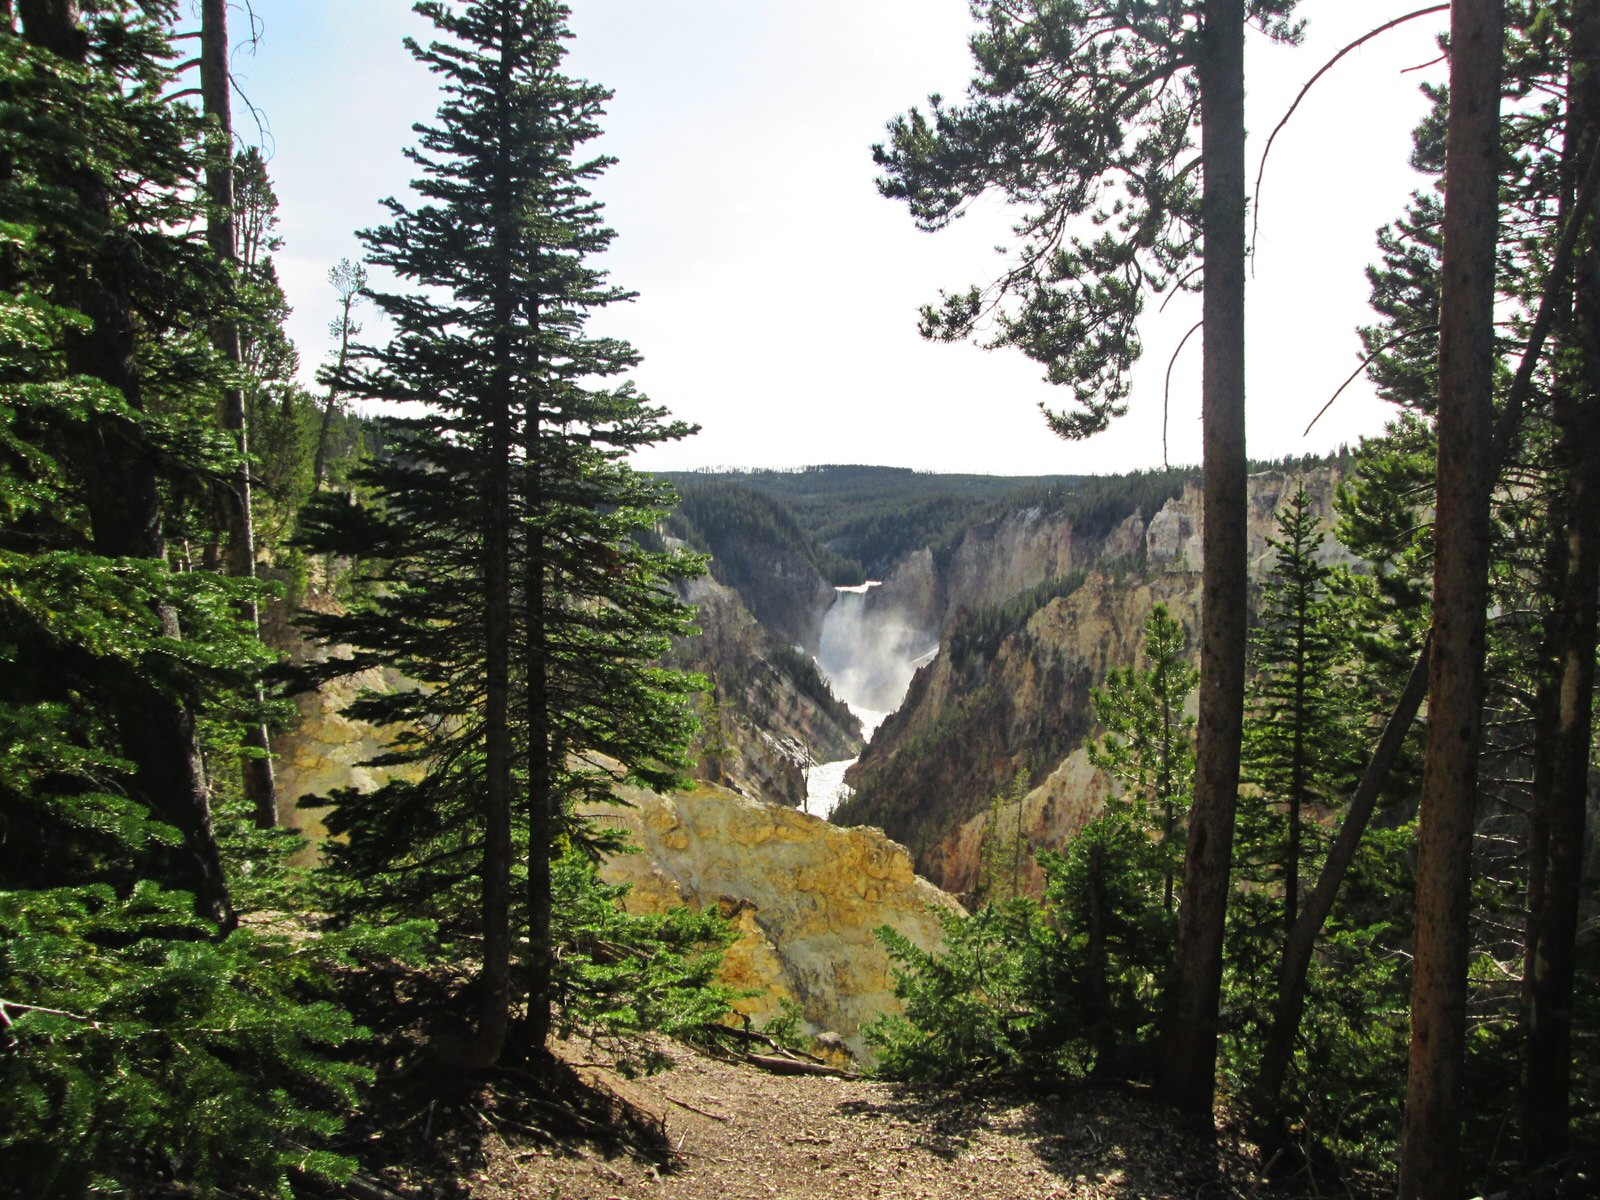 photo: View from the South Rim Trail, near Artist's Point, Yellowstone National Park. Photo by Valerie A. Russo.